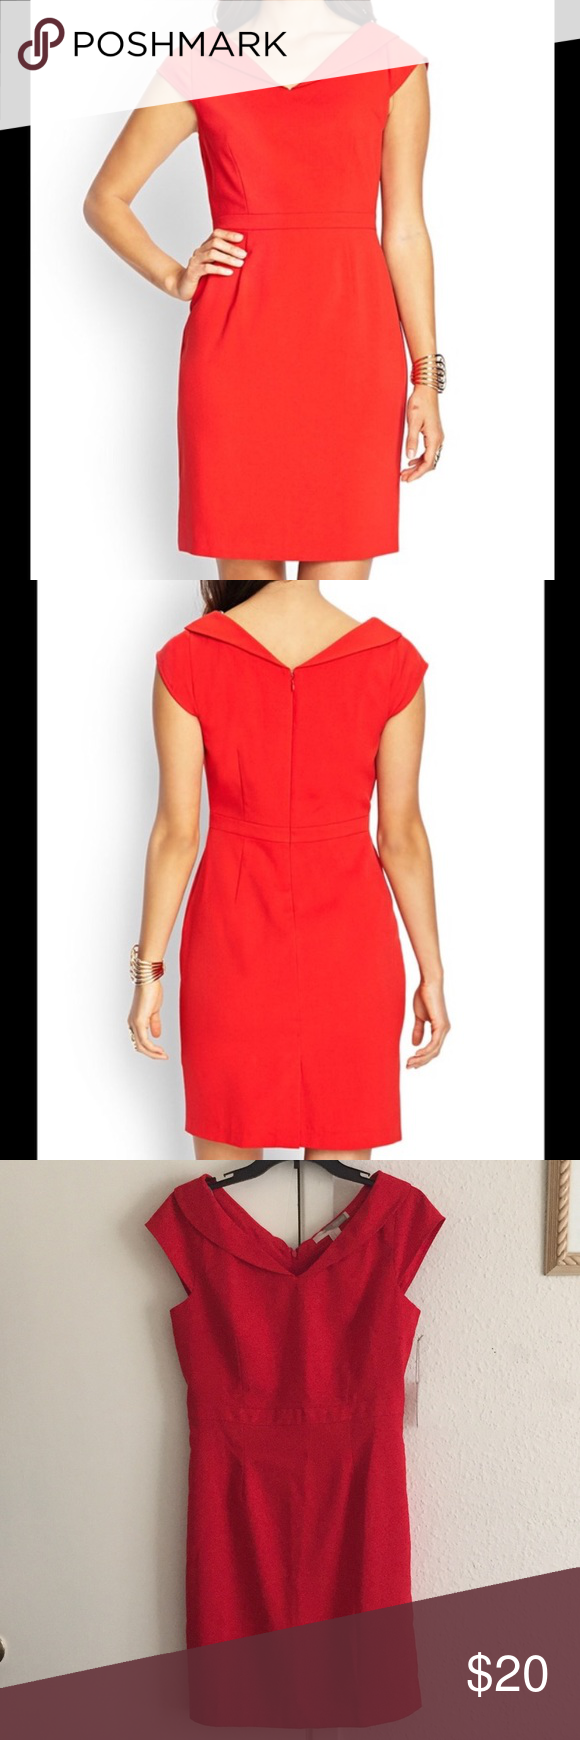 Red cap sleeve sheath mini dress medium new with tag brand forever